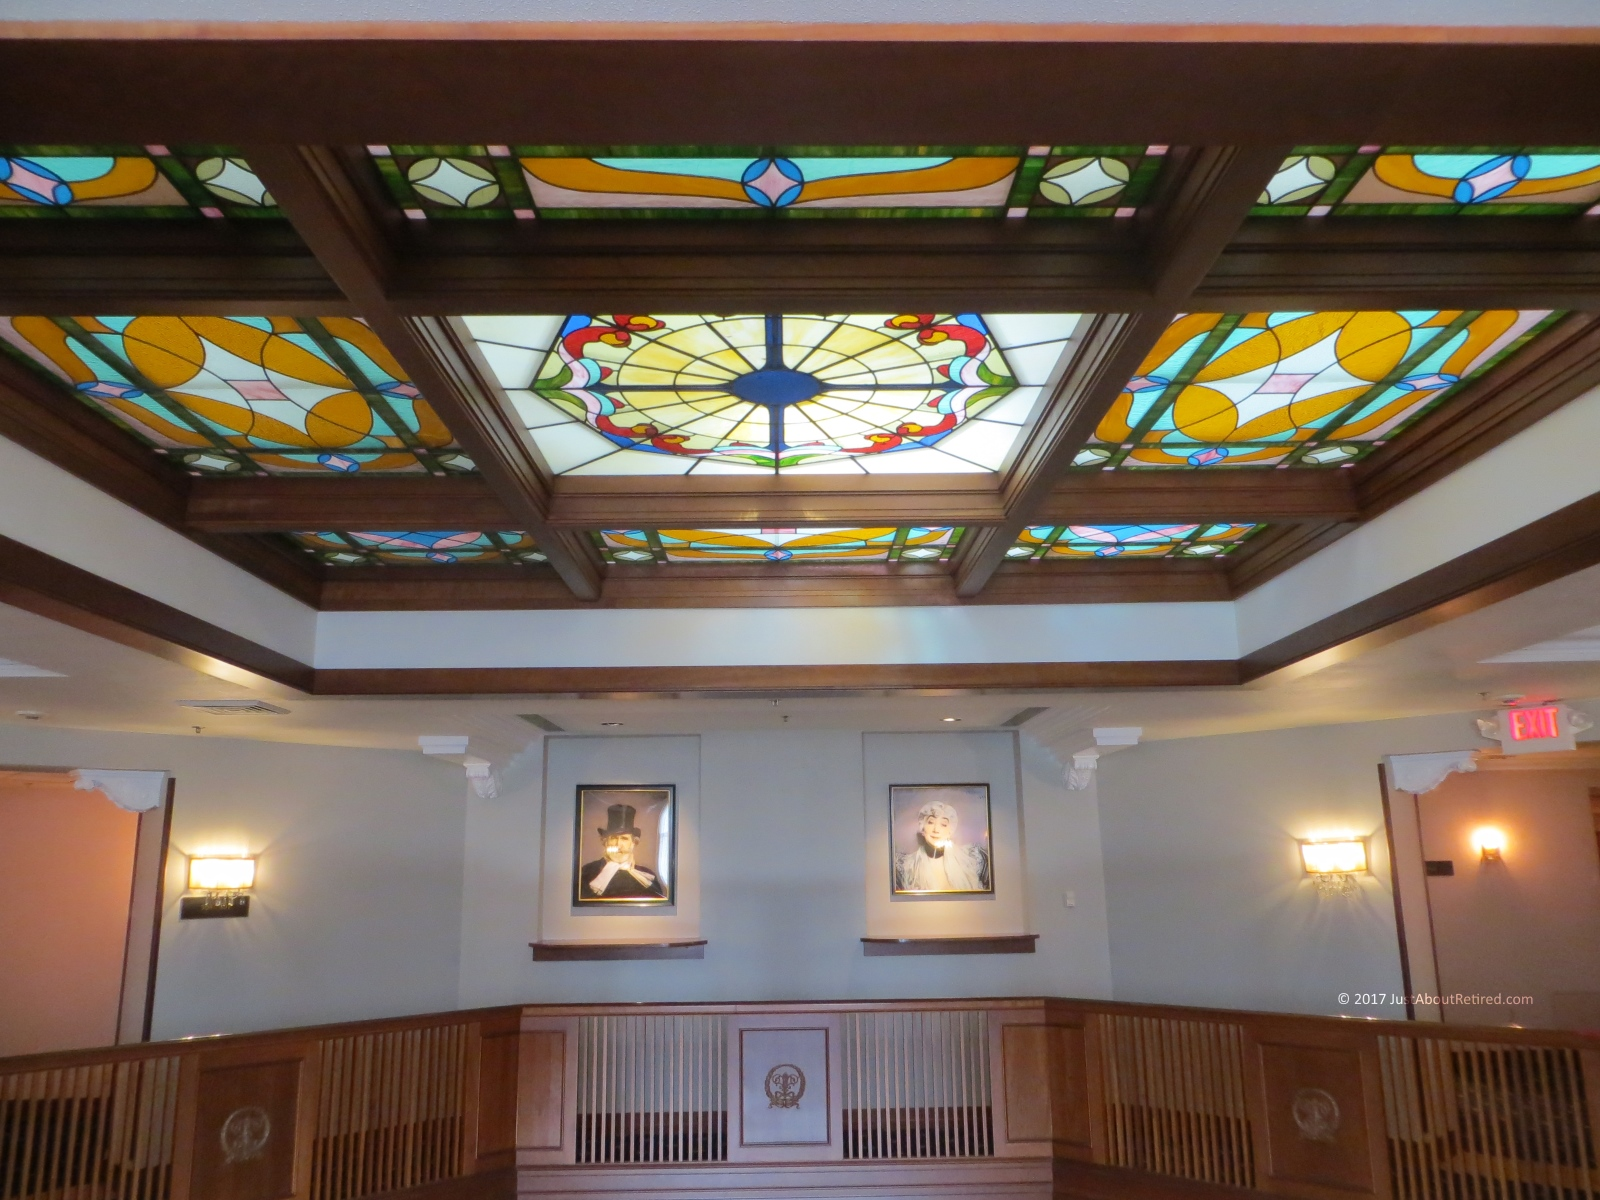 Hotel Winneshiek in Decorah, Iowa stained glass